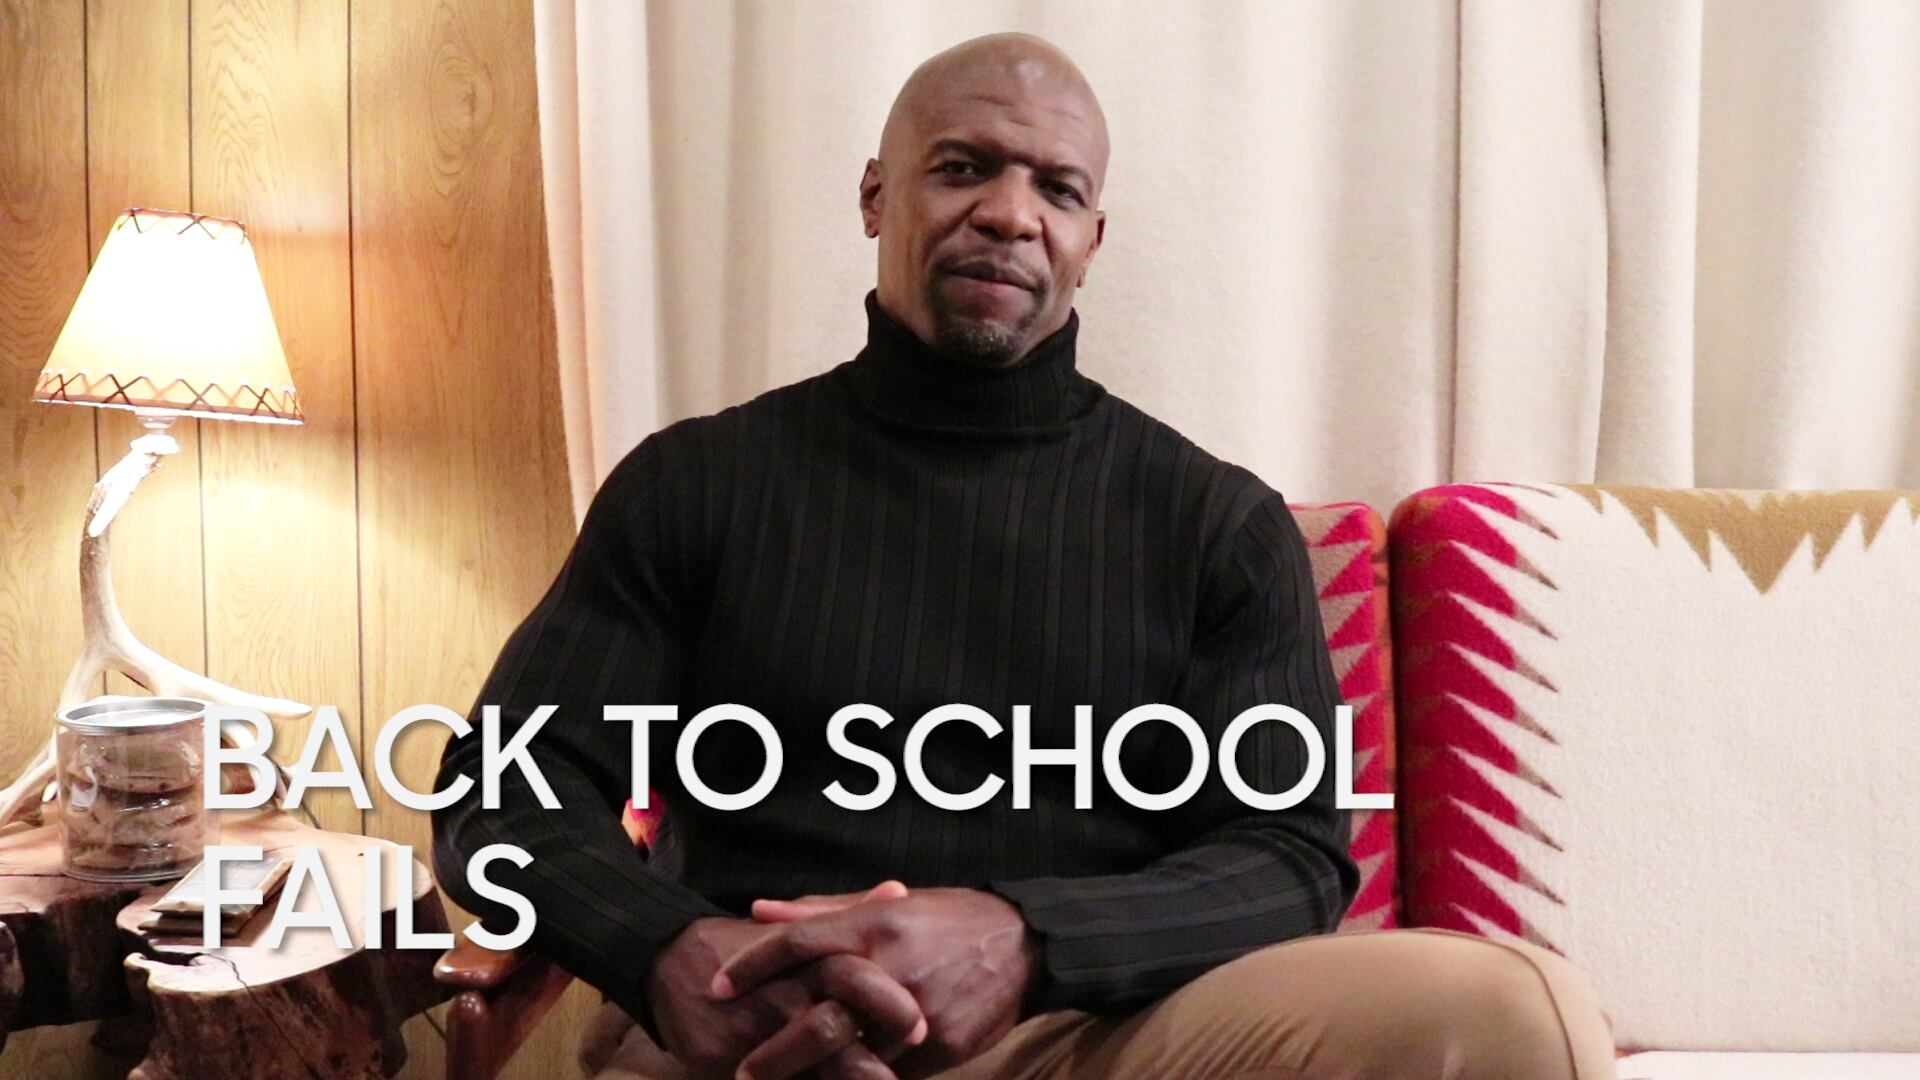 Back to School Fails: Terry Crews